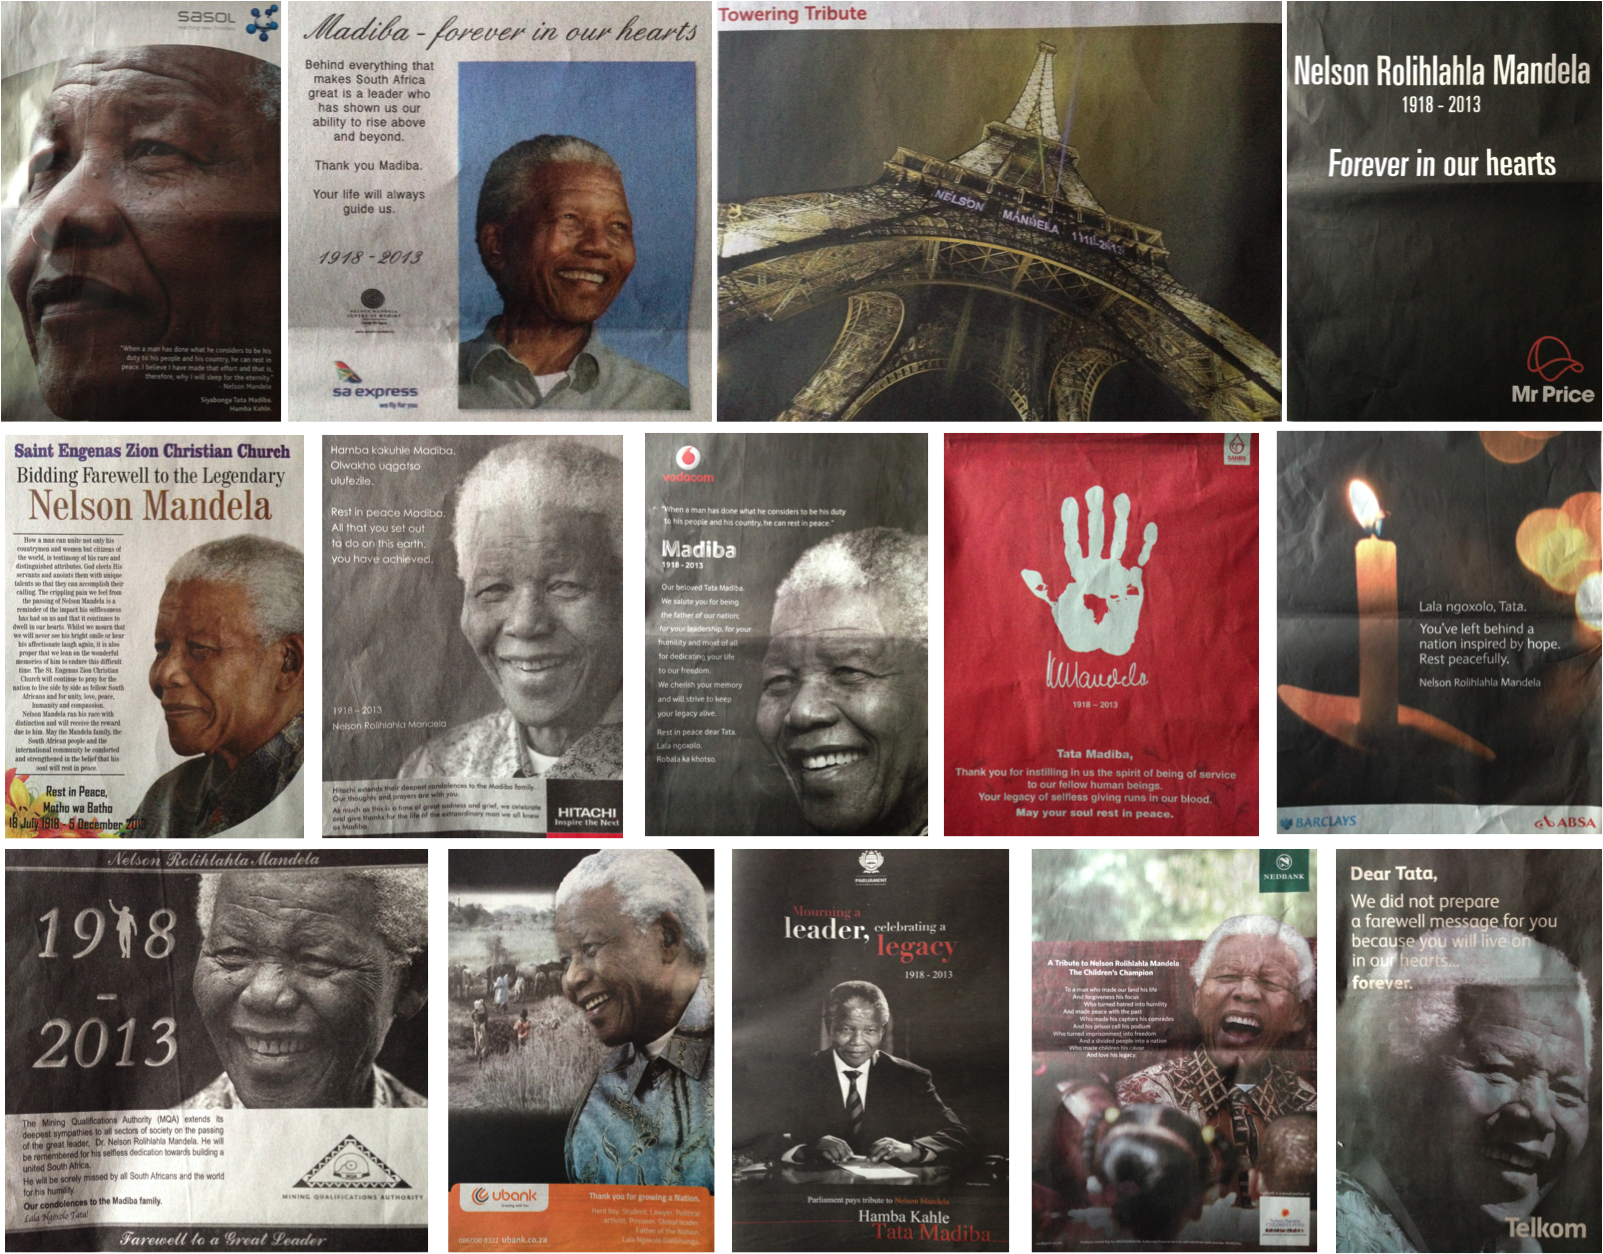 "<img src=http://""Mandela_Tribute_Collage_Dec_2013.png""?w=504&h=394 alt=""Mandela Tribute Collage, Dec 2013"">"